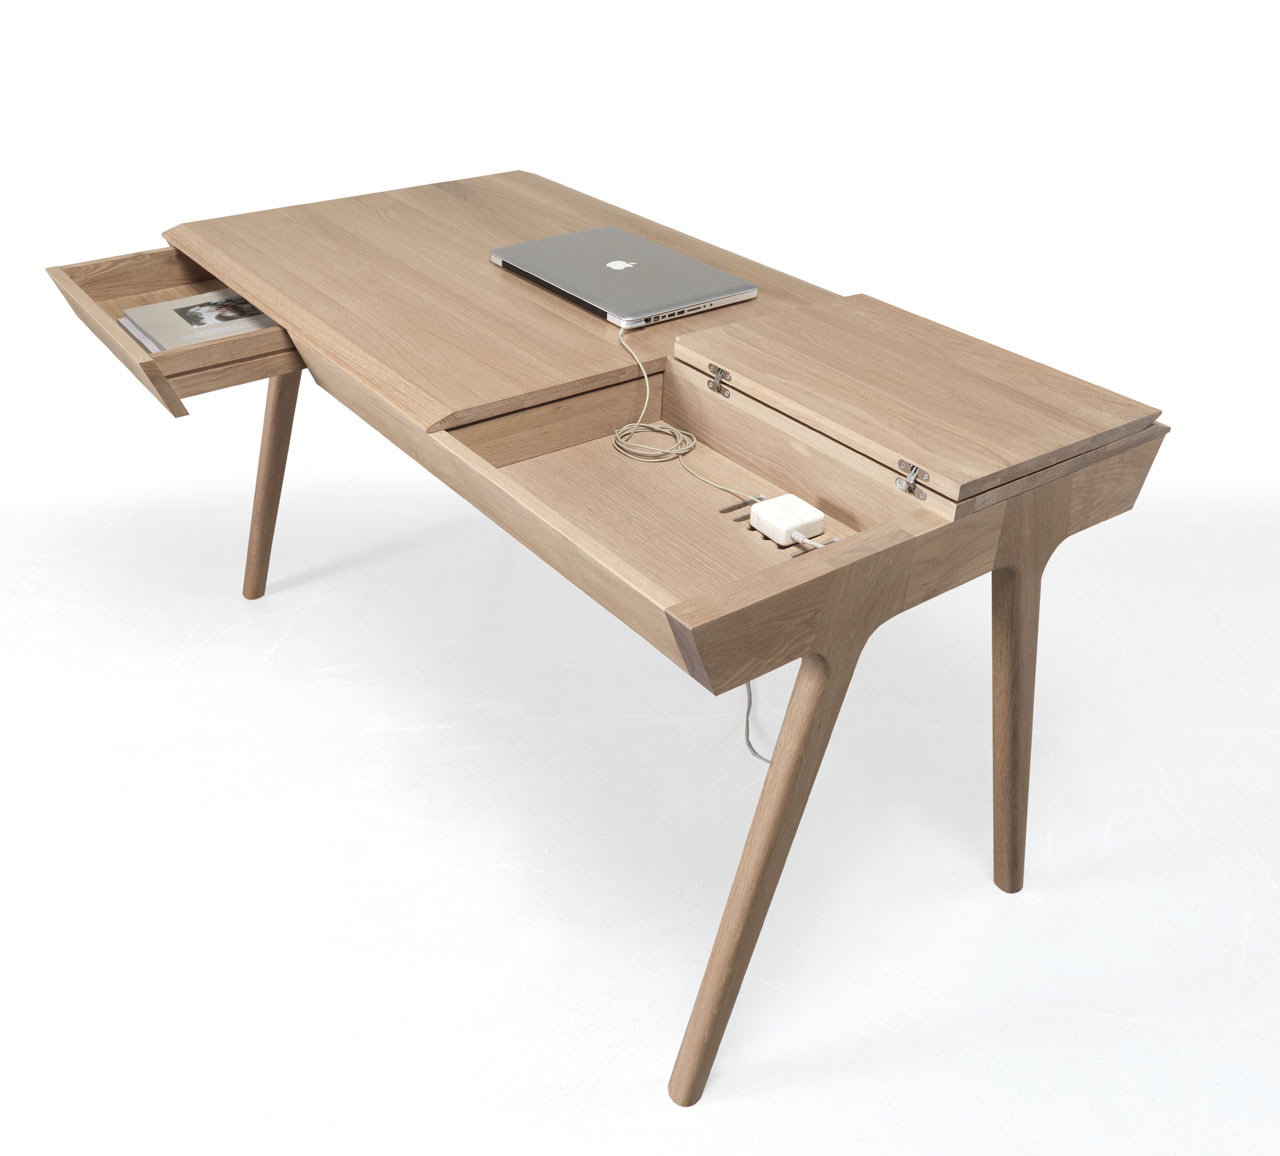 metis a solid wood desk with plenty of storage